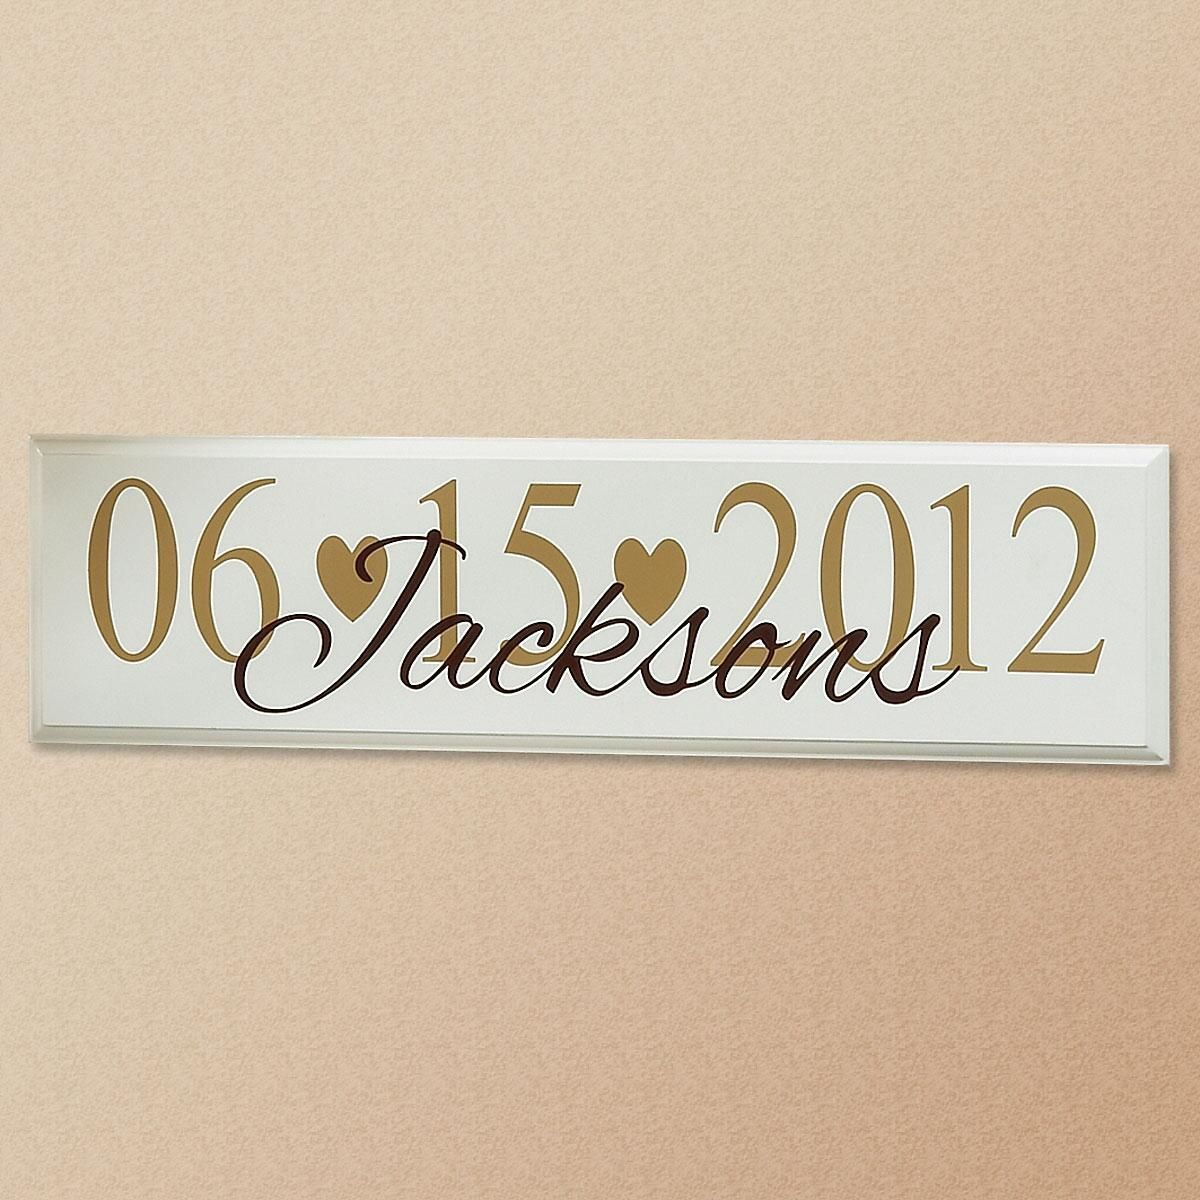 Wedding Date Wooden Plaque